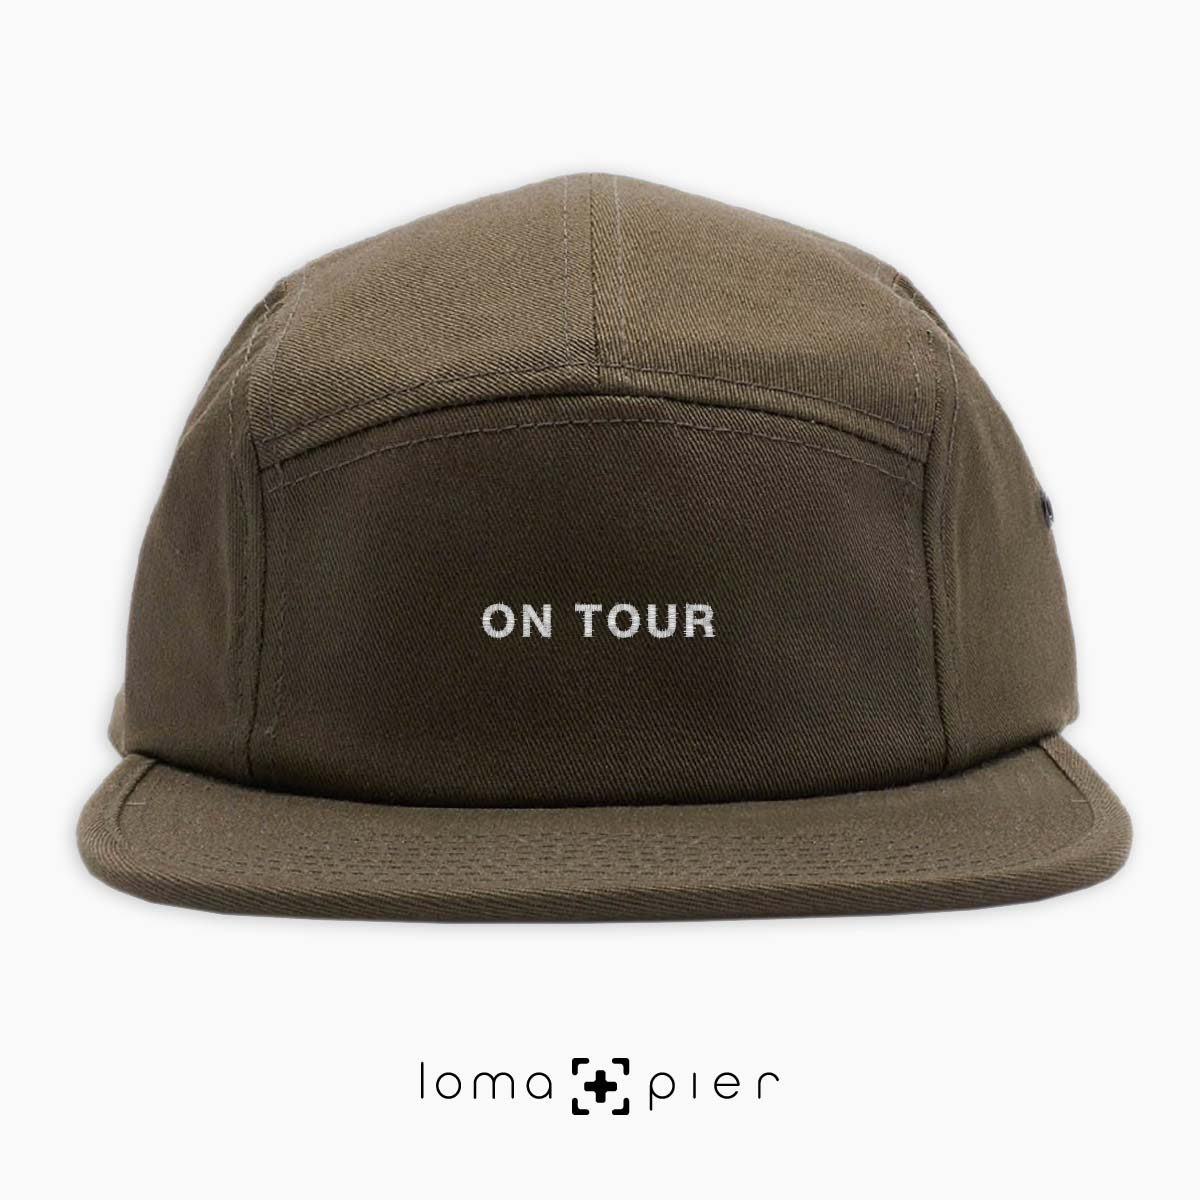 ON TOUR embroidered on an olivegreen cotton 5-panel hat by loma+pier hat store